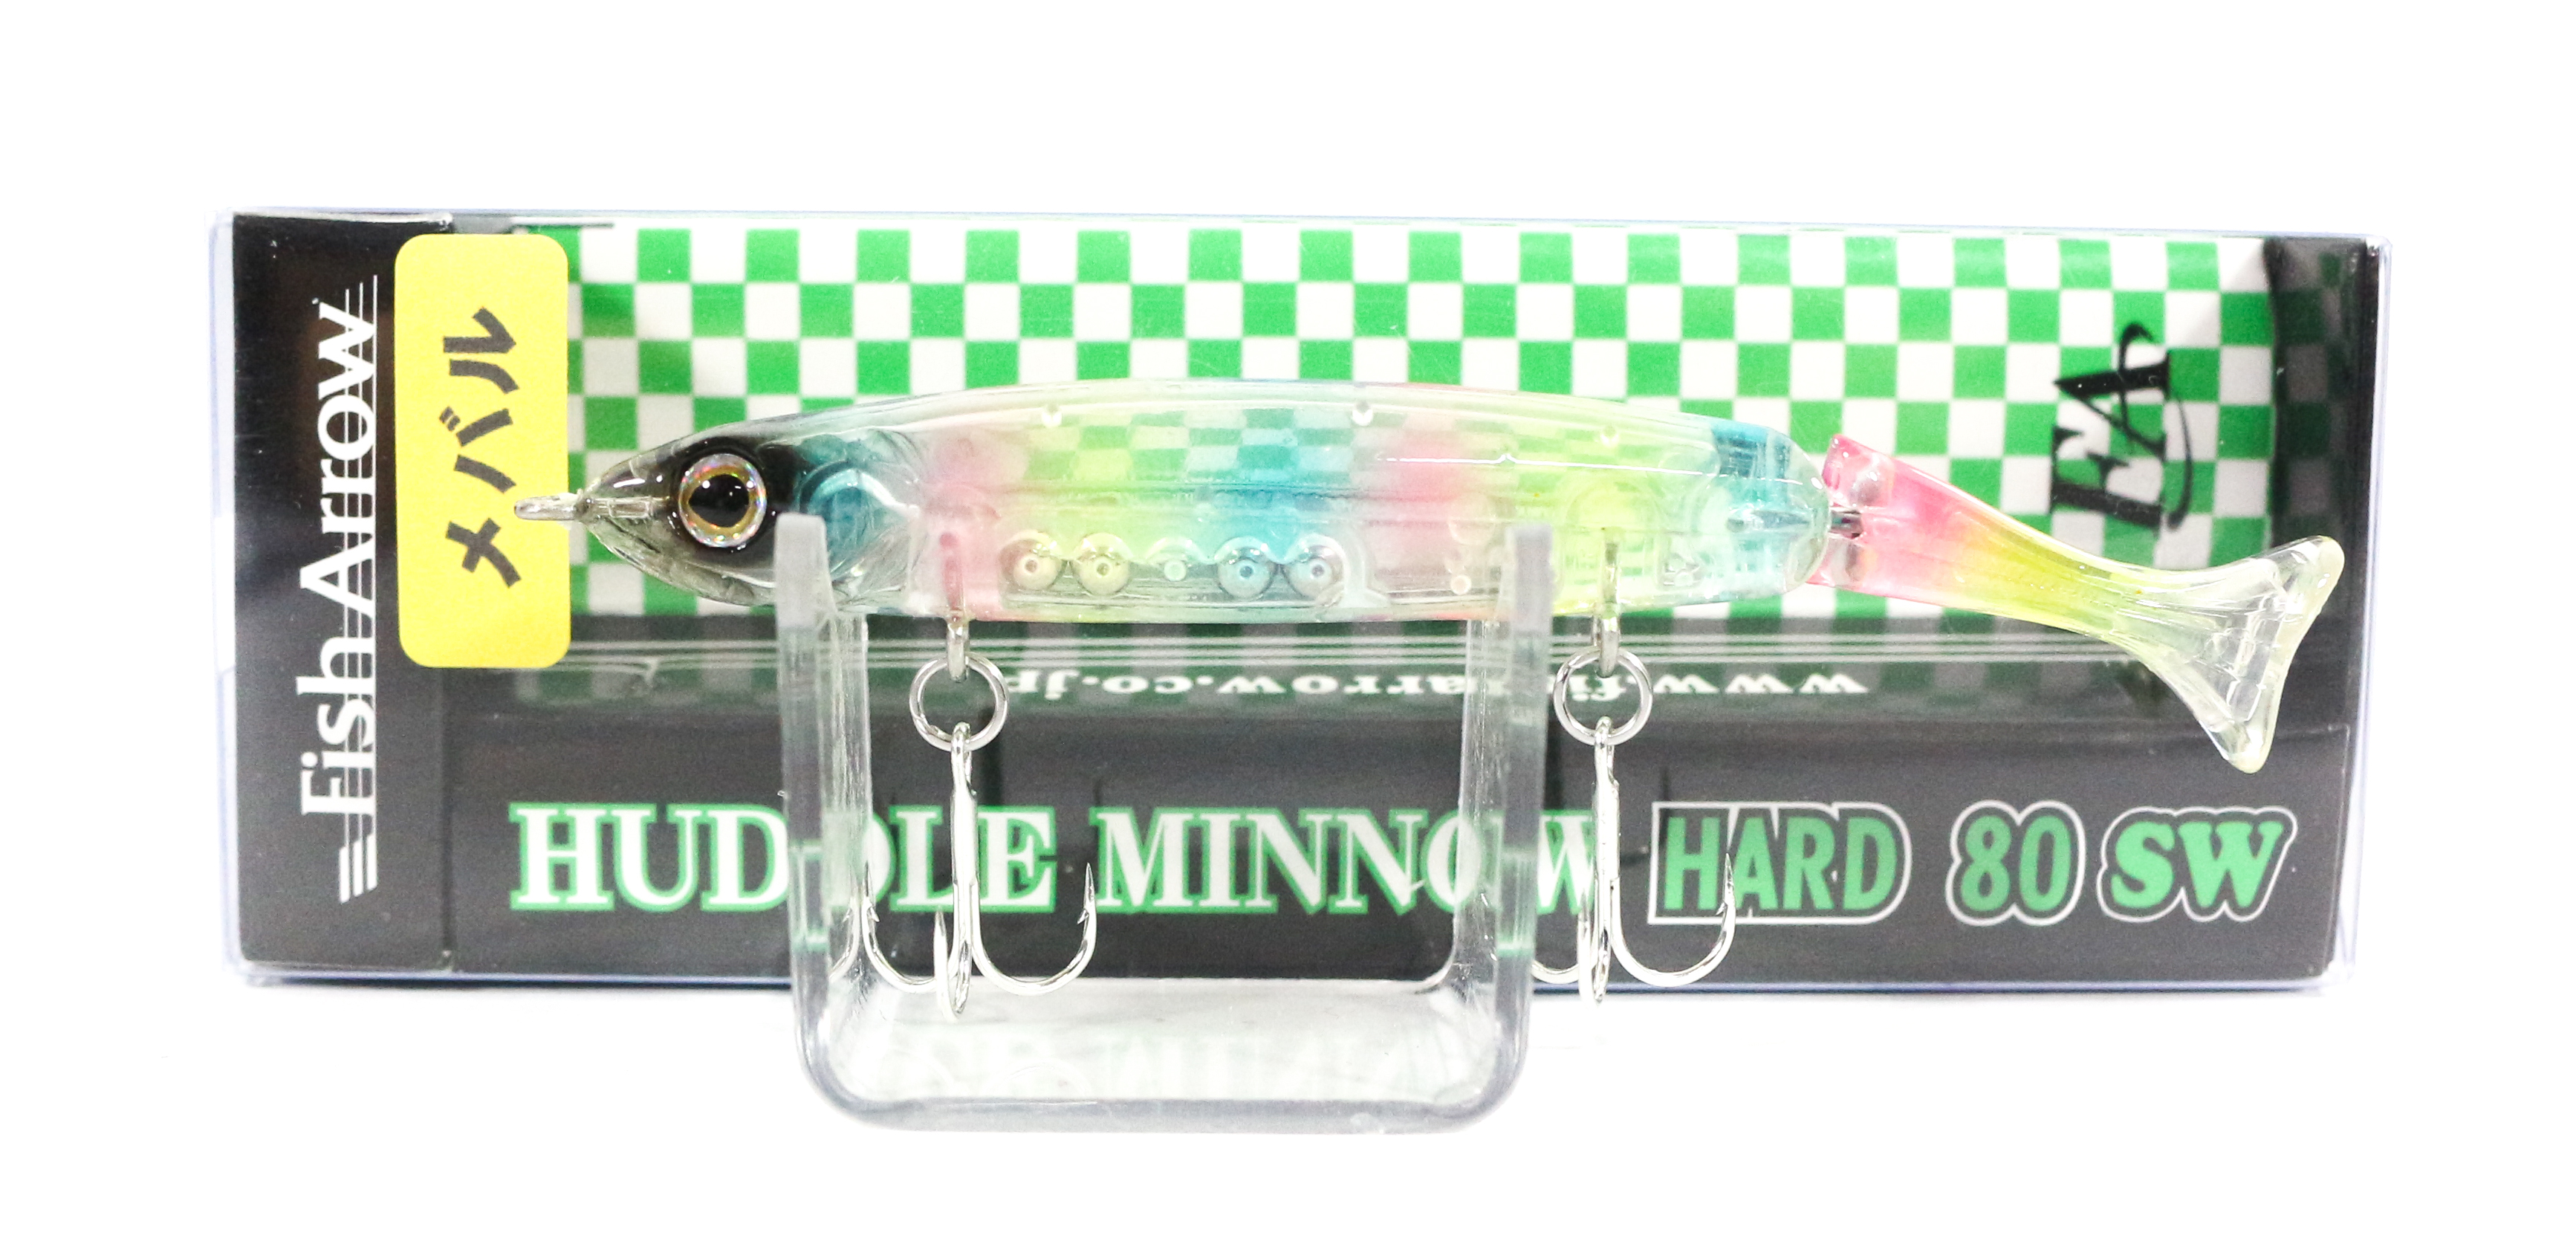 Fish Arrow Huddle Minnow Hard 80 SW Sinking Lure #M03 (0134)